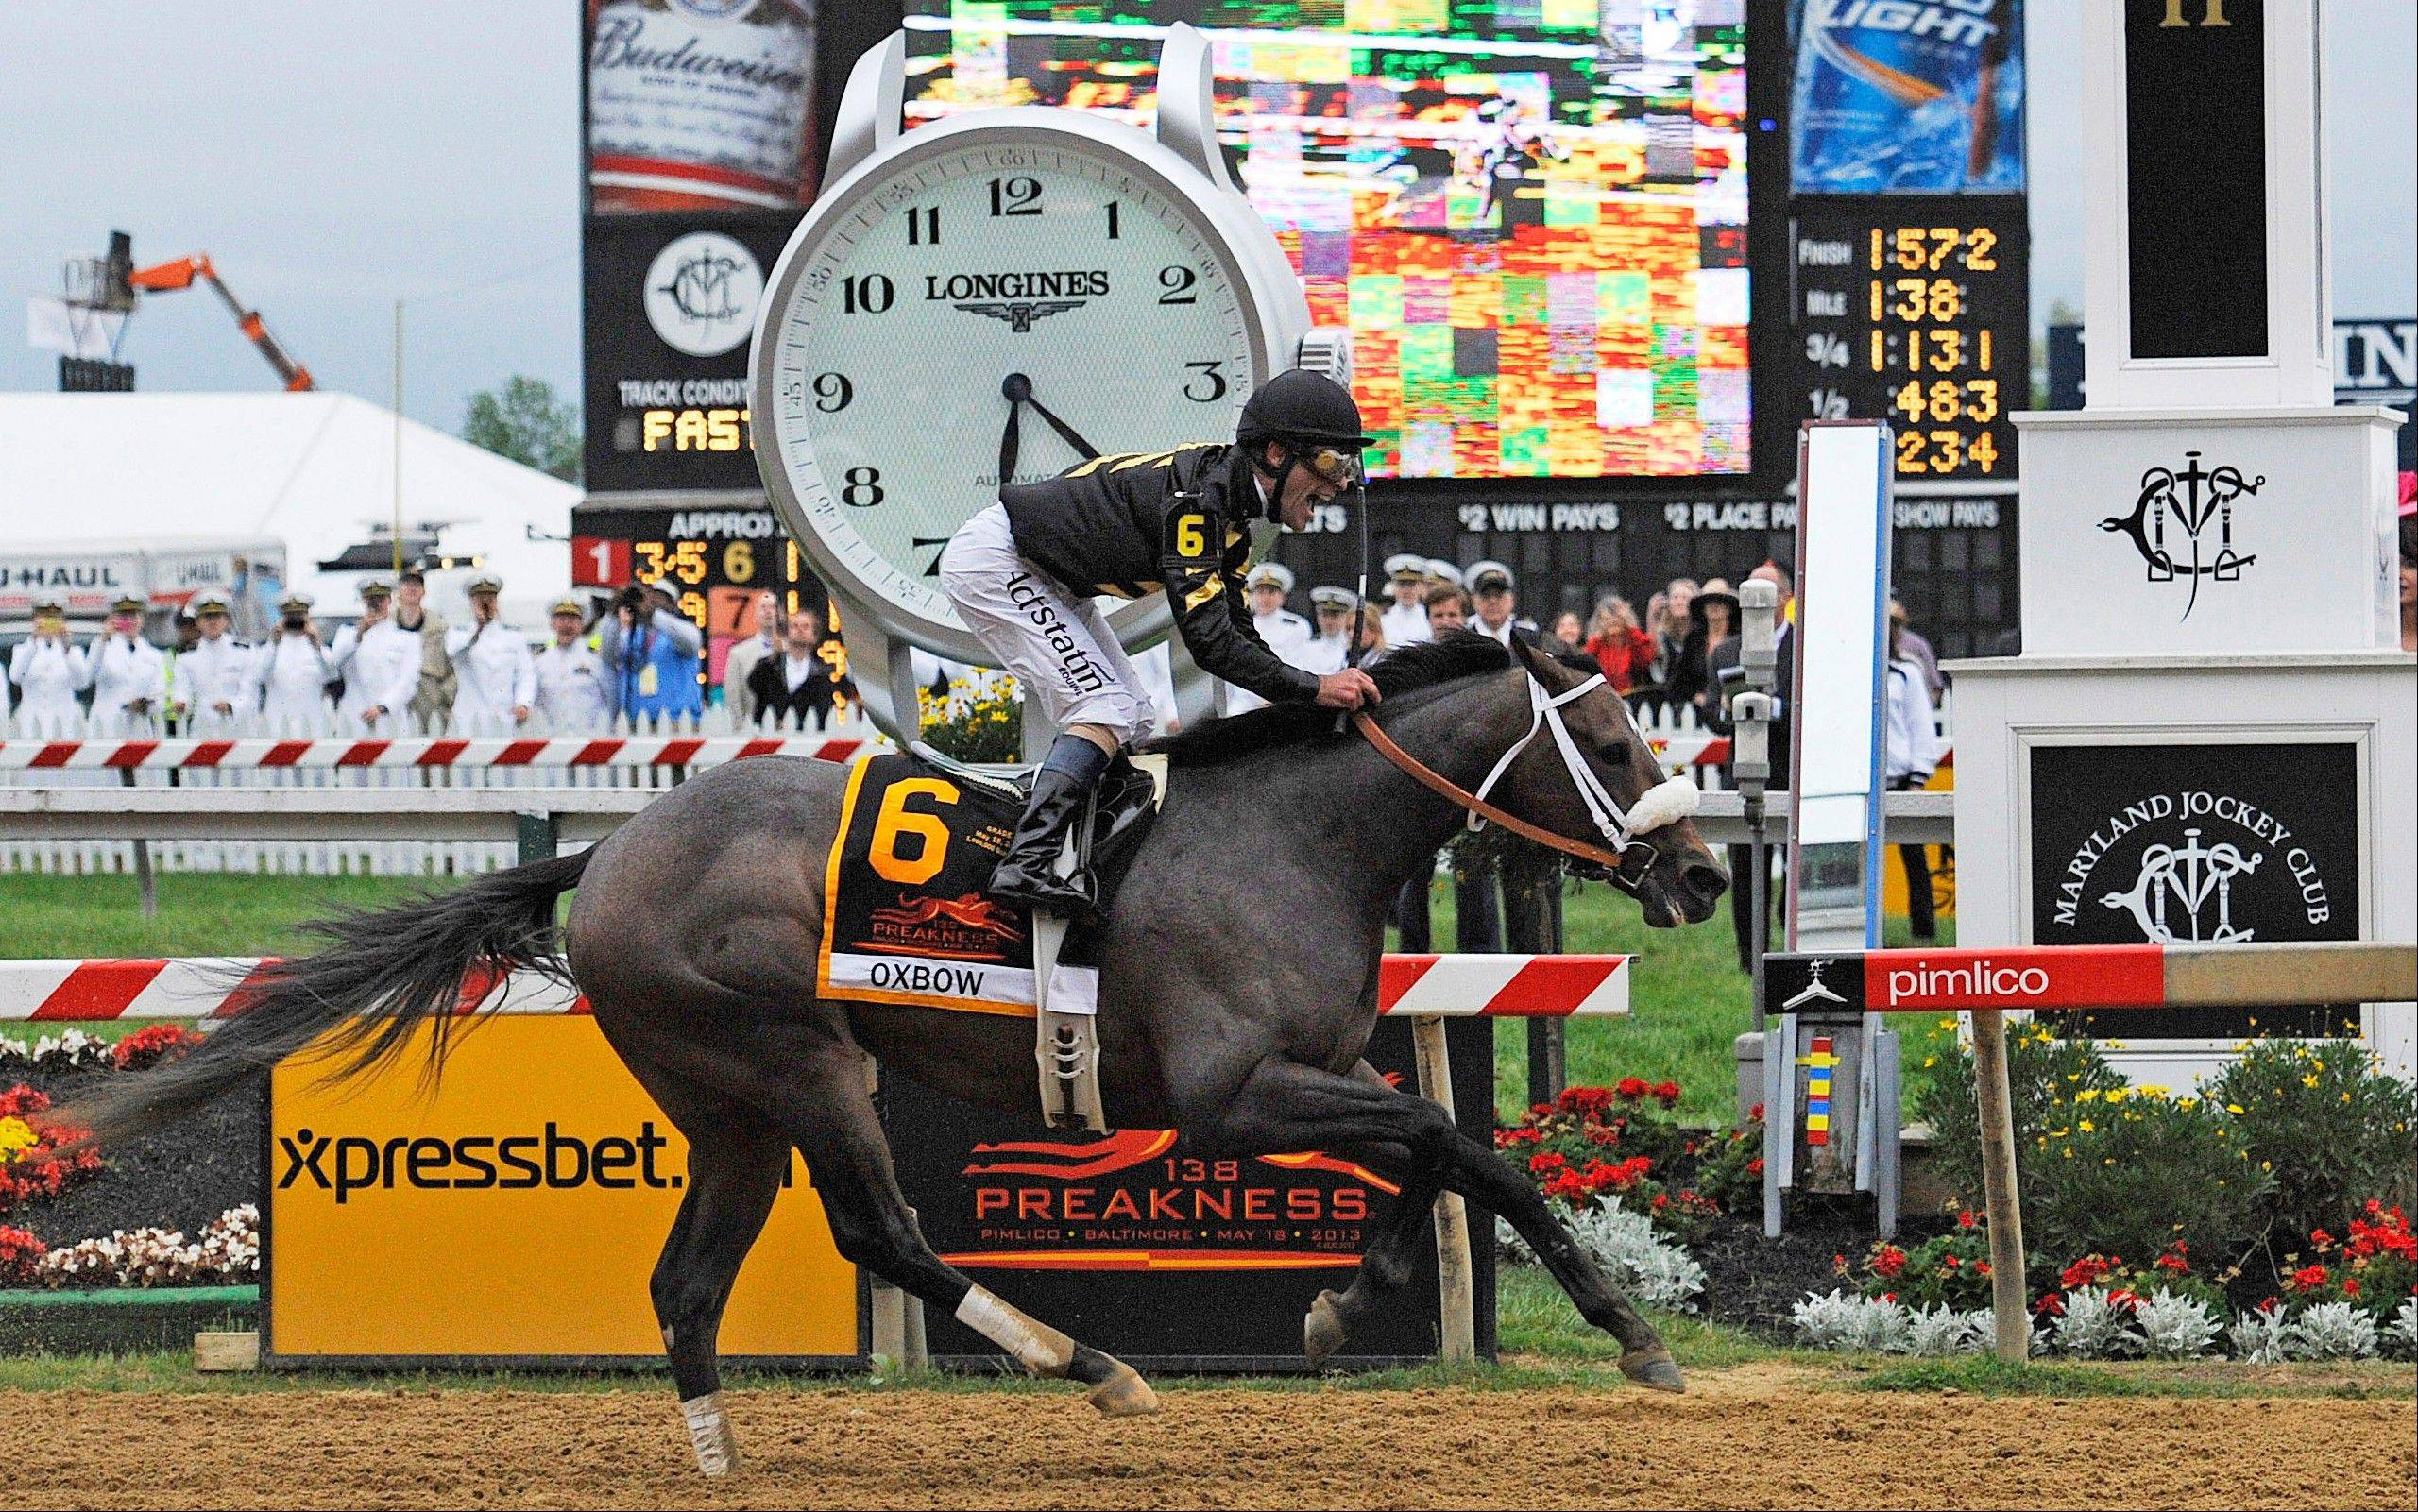 Oxbow, ridden by jockey Gary Stevens, wins the 138th Preakness Stakes horse race at Pimlico Race Course, Saturday, May 18, 2013, in Baltimore.